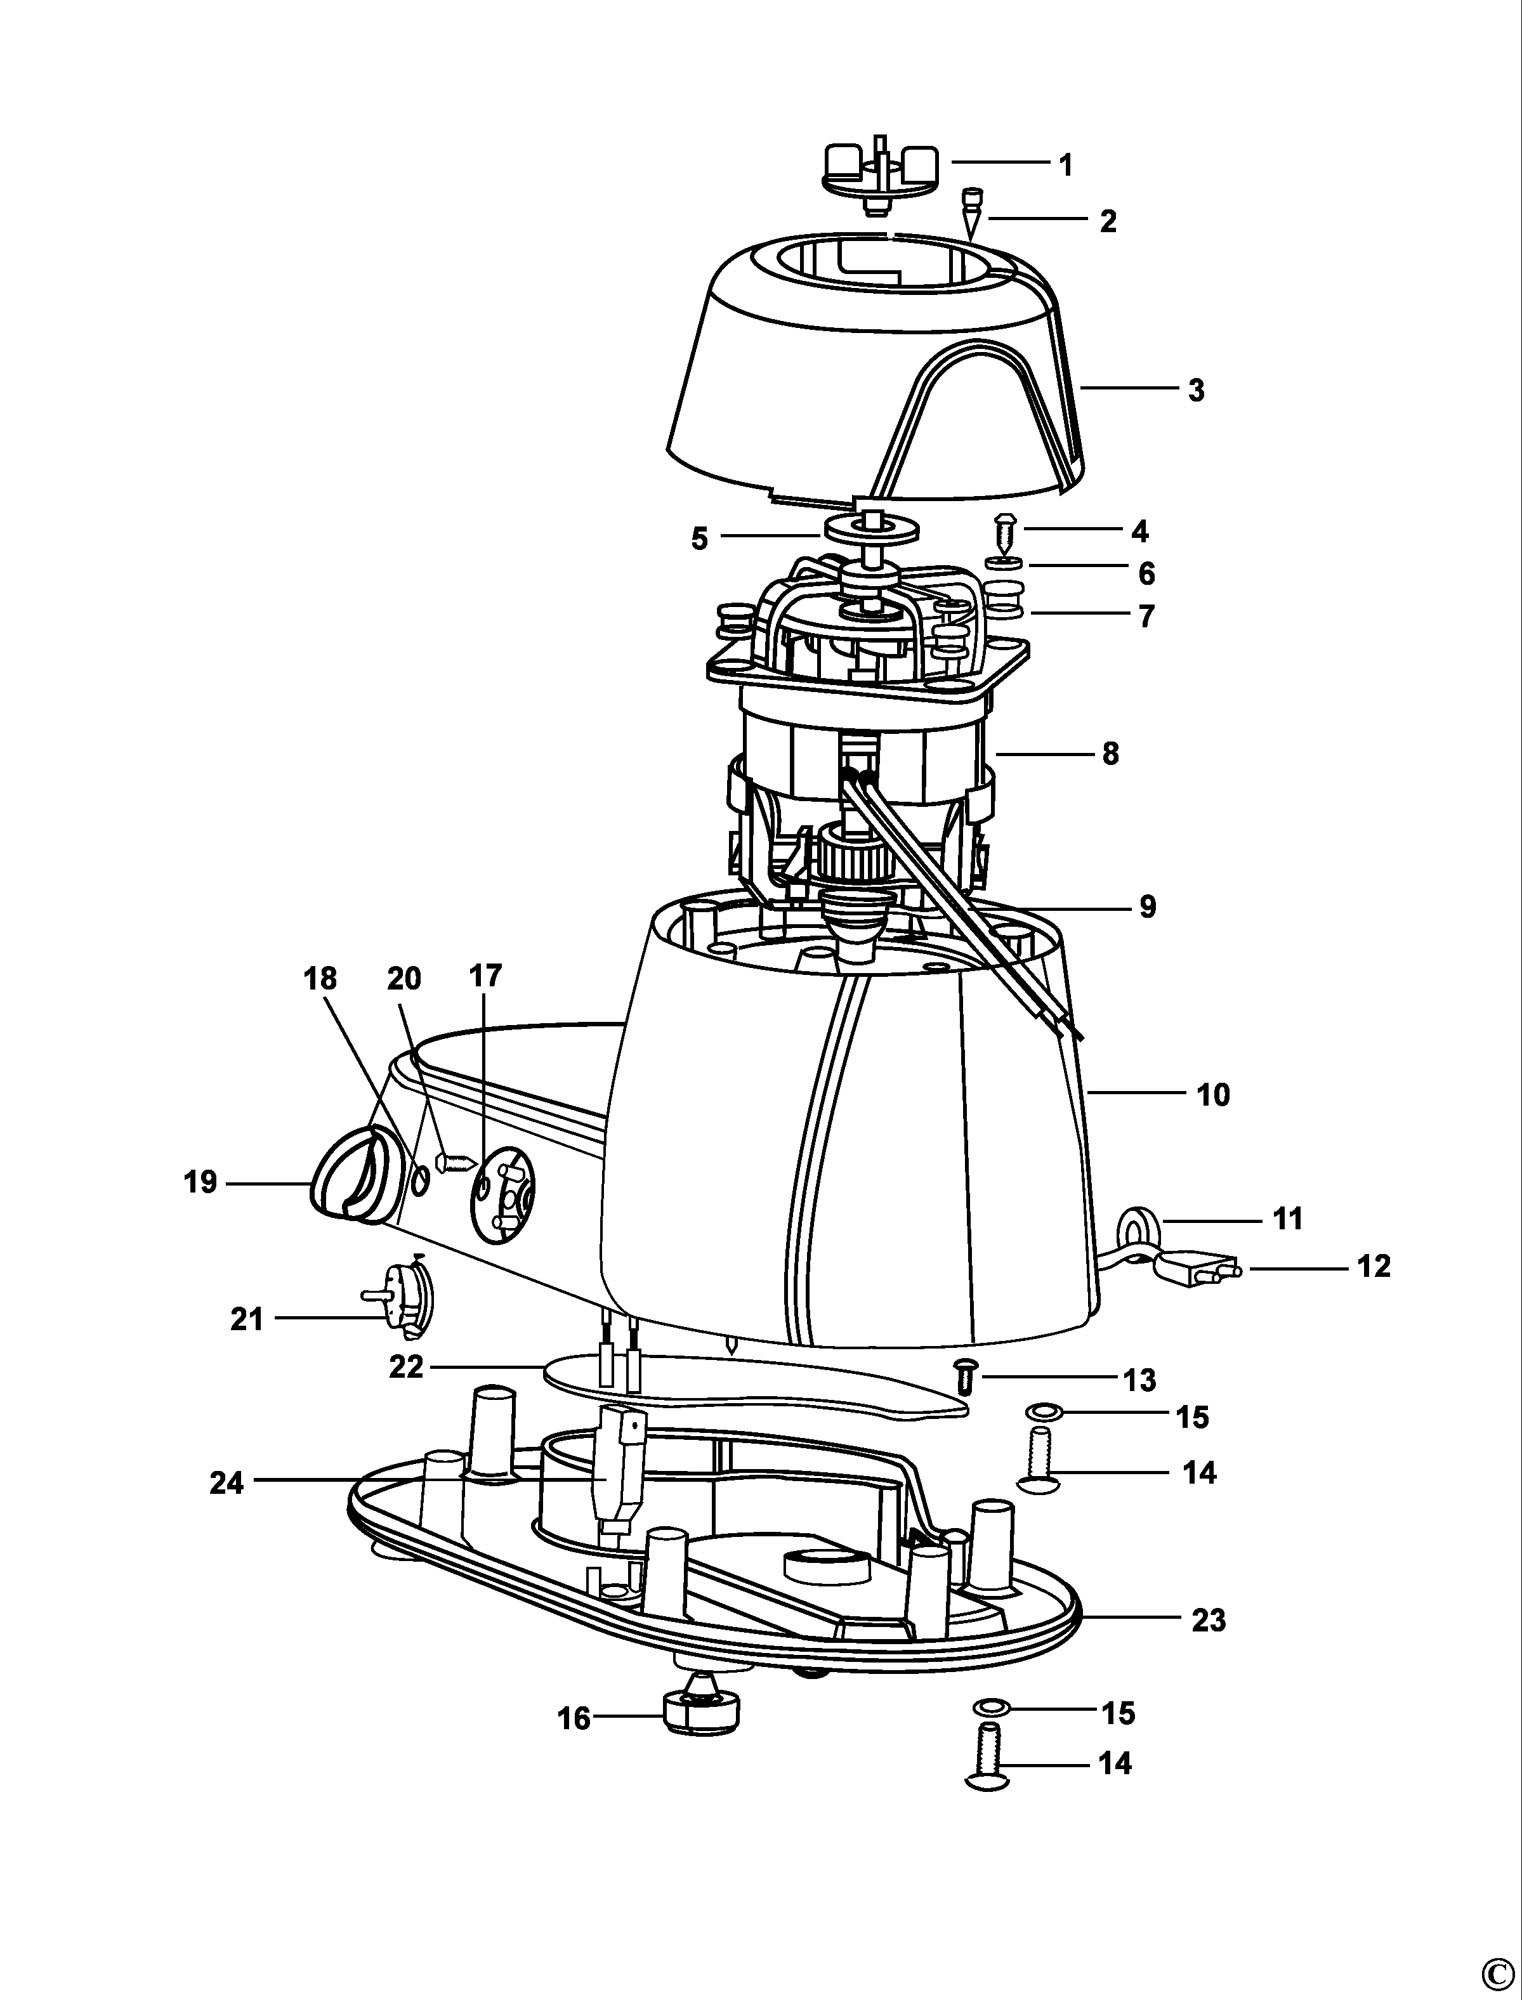 31 Meat Grinder Parts Diagram